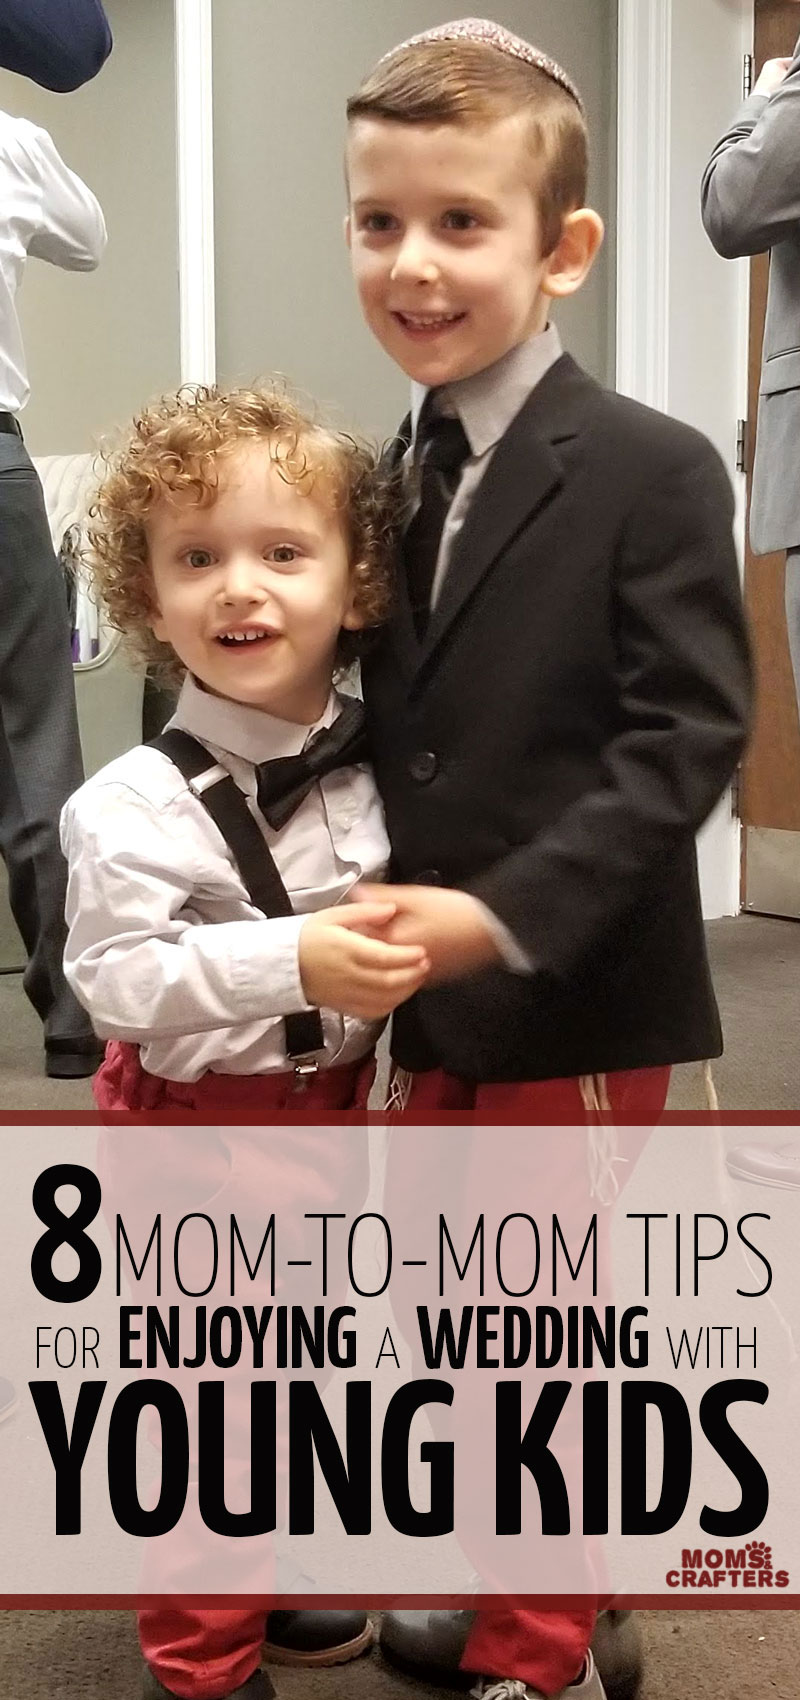 If you're bringing kids to a wedding, you'll want to read these parenting tips for kids at a wedding - it'll make the day go so much smoother!